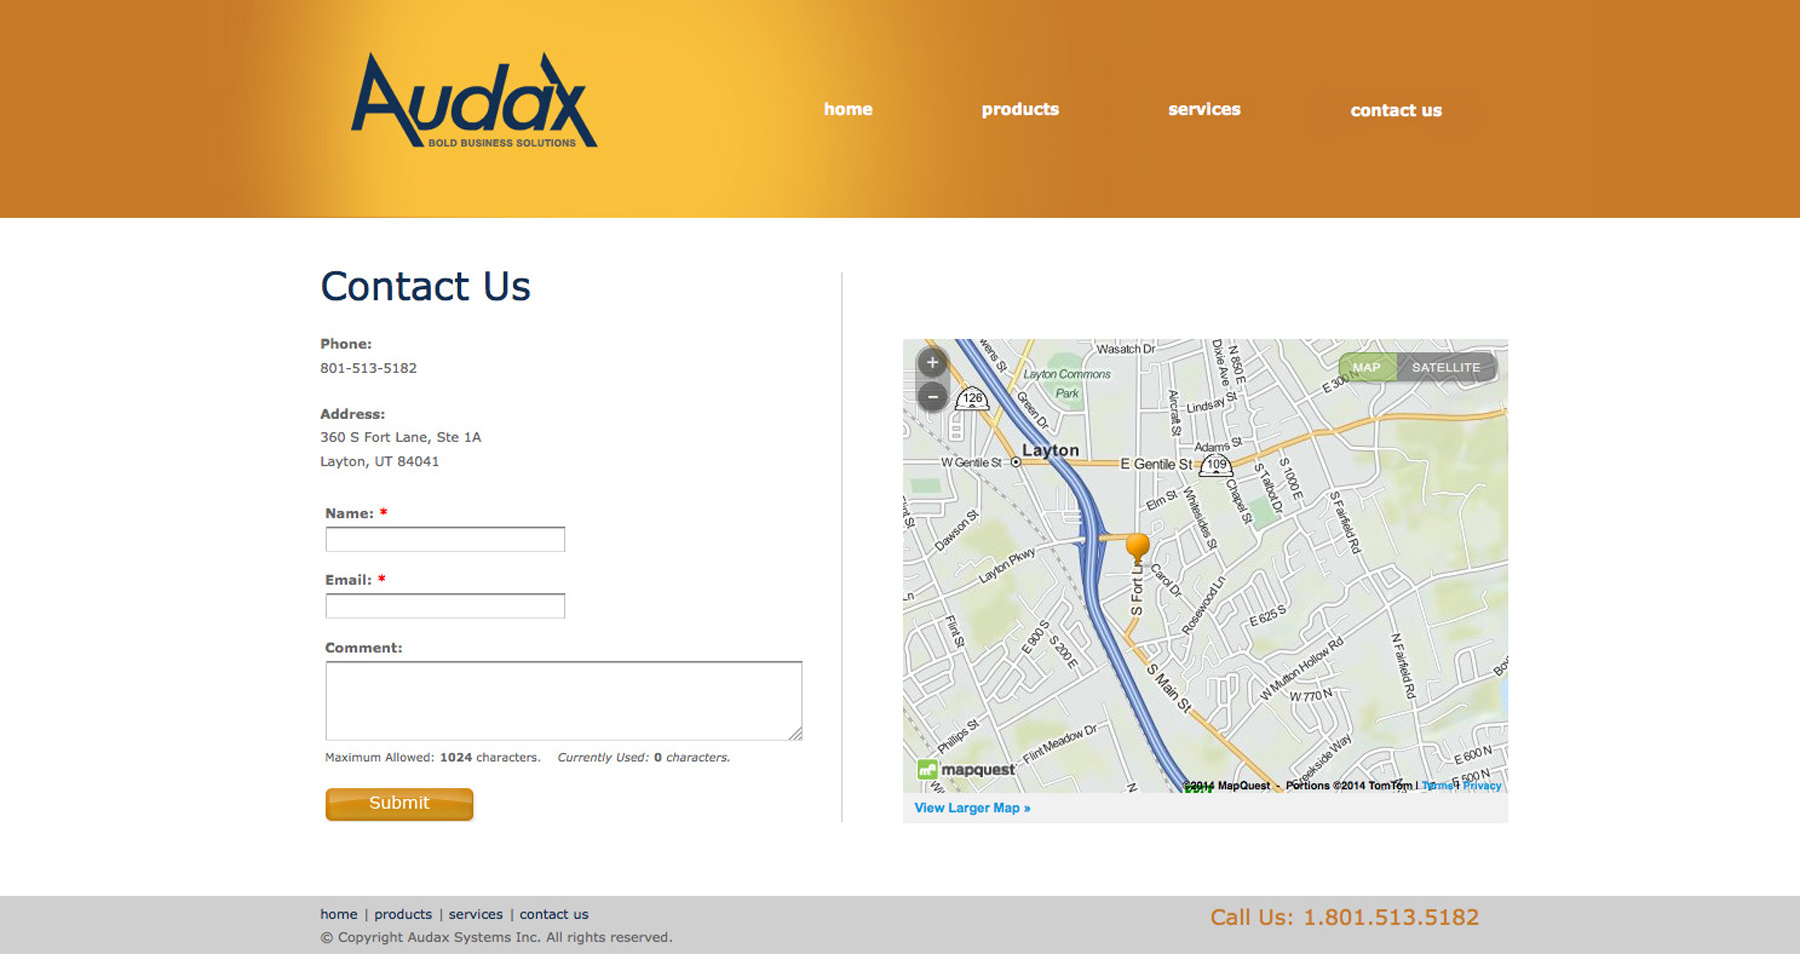 Audax website design before